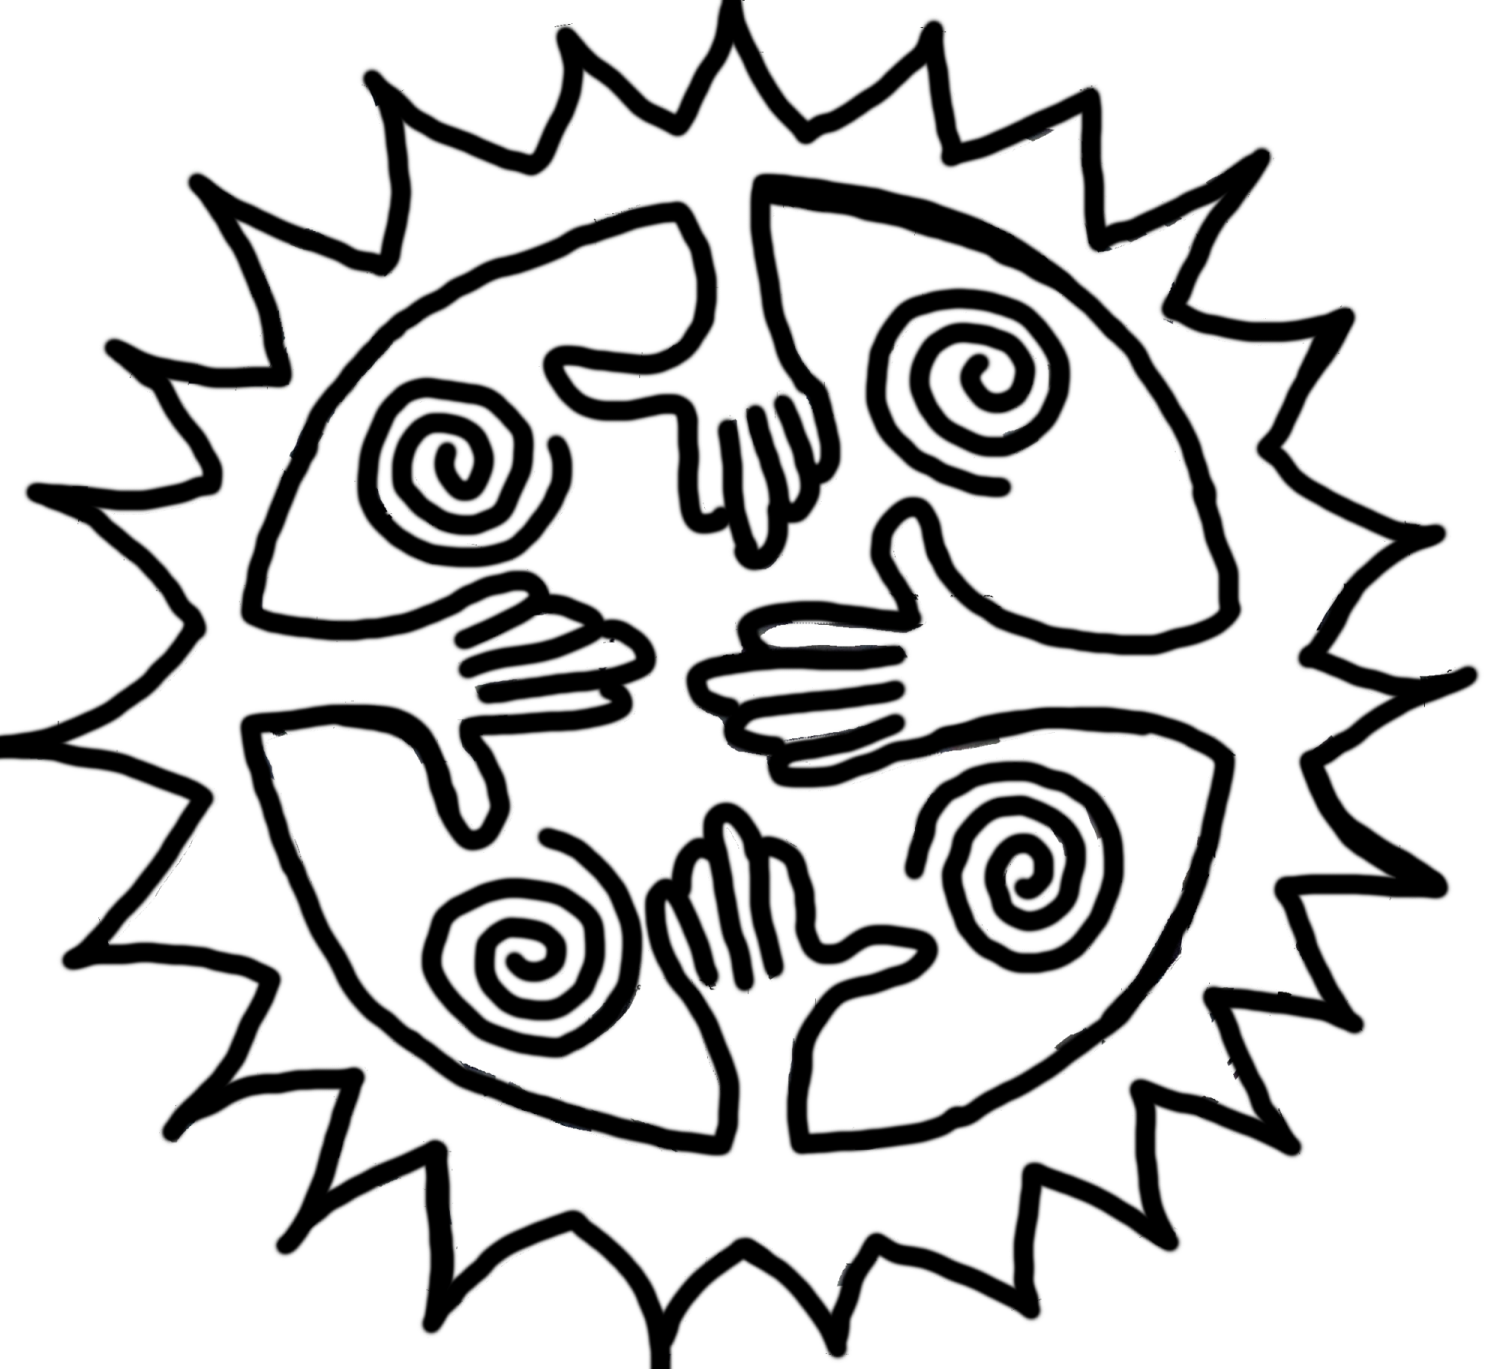 Sun at getdrawings com. Elements drawing clipart freeuse